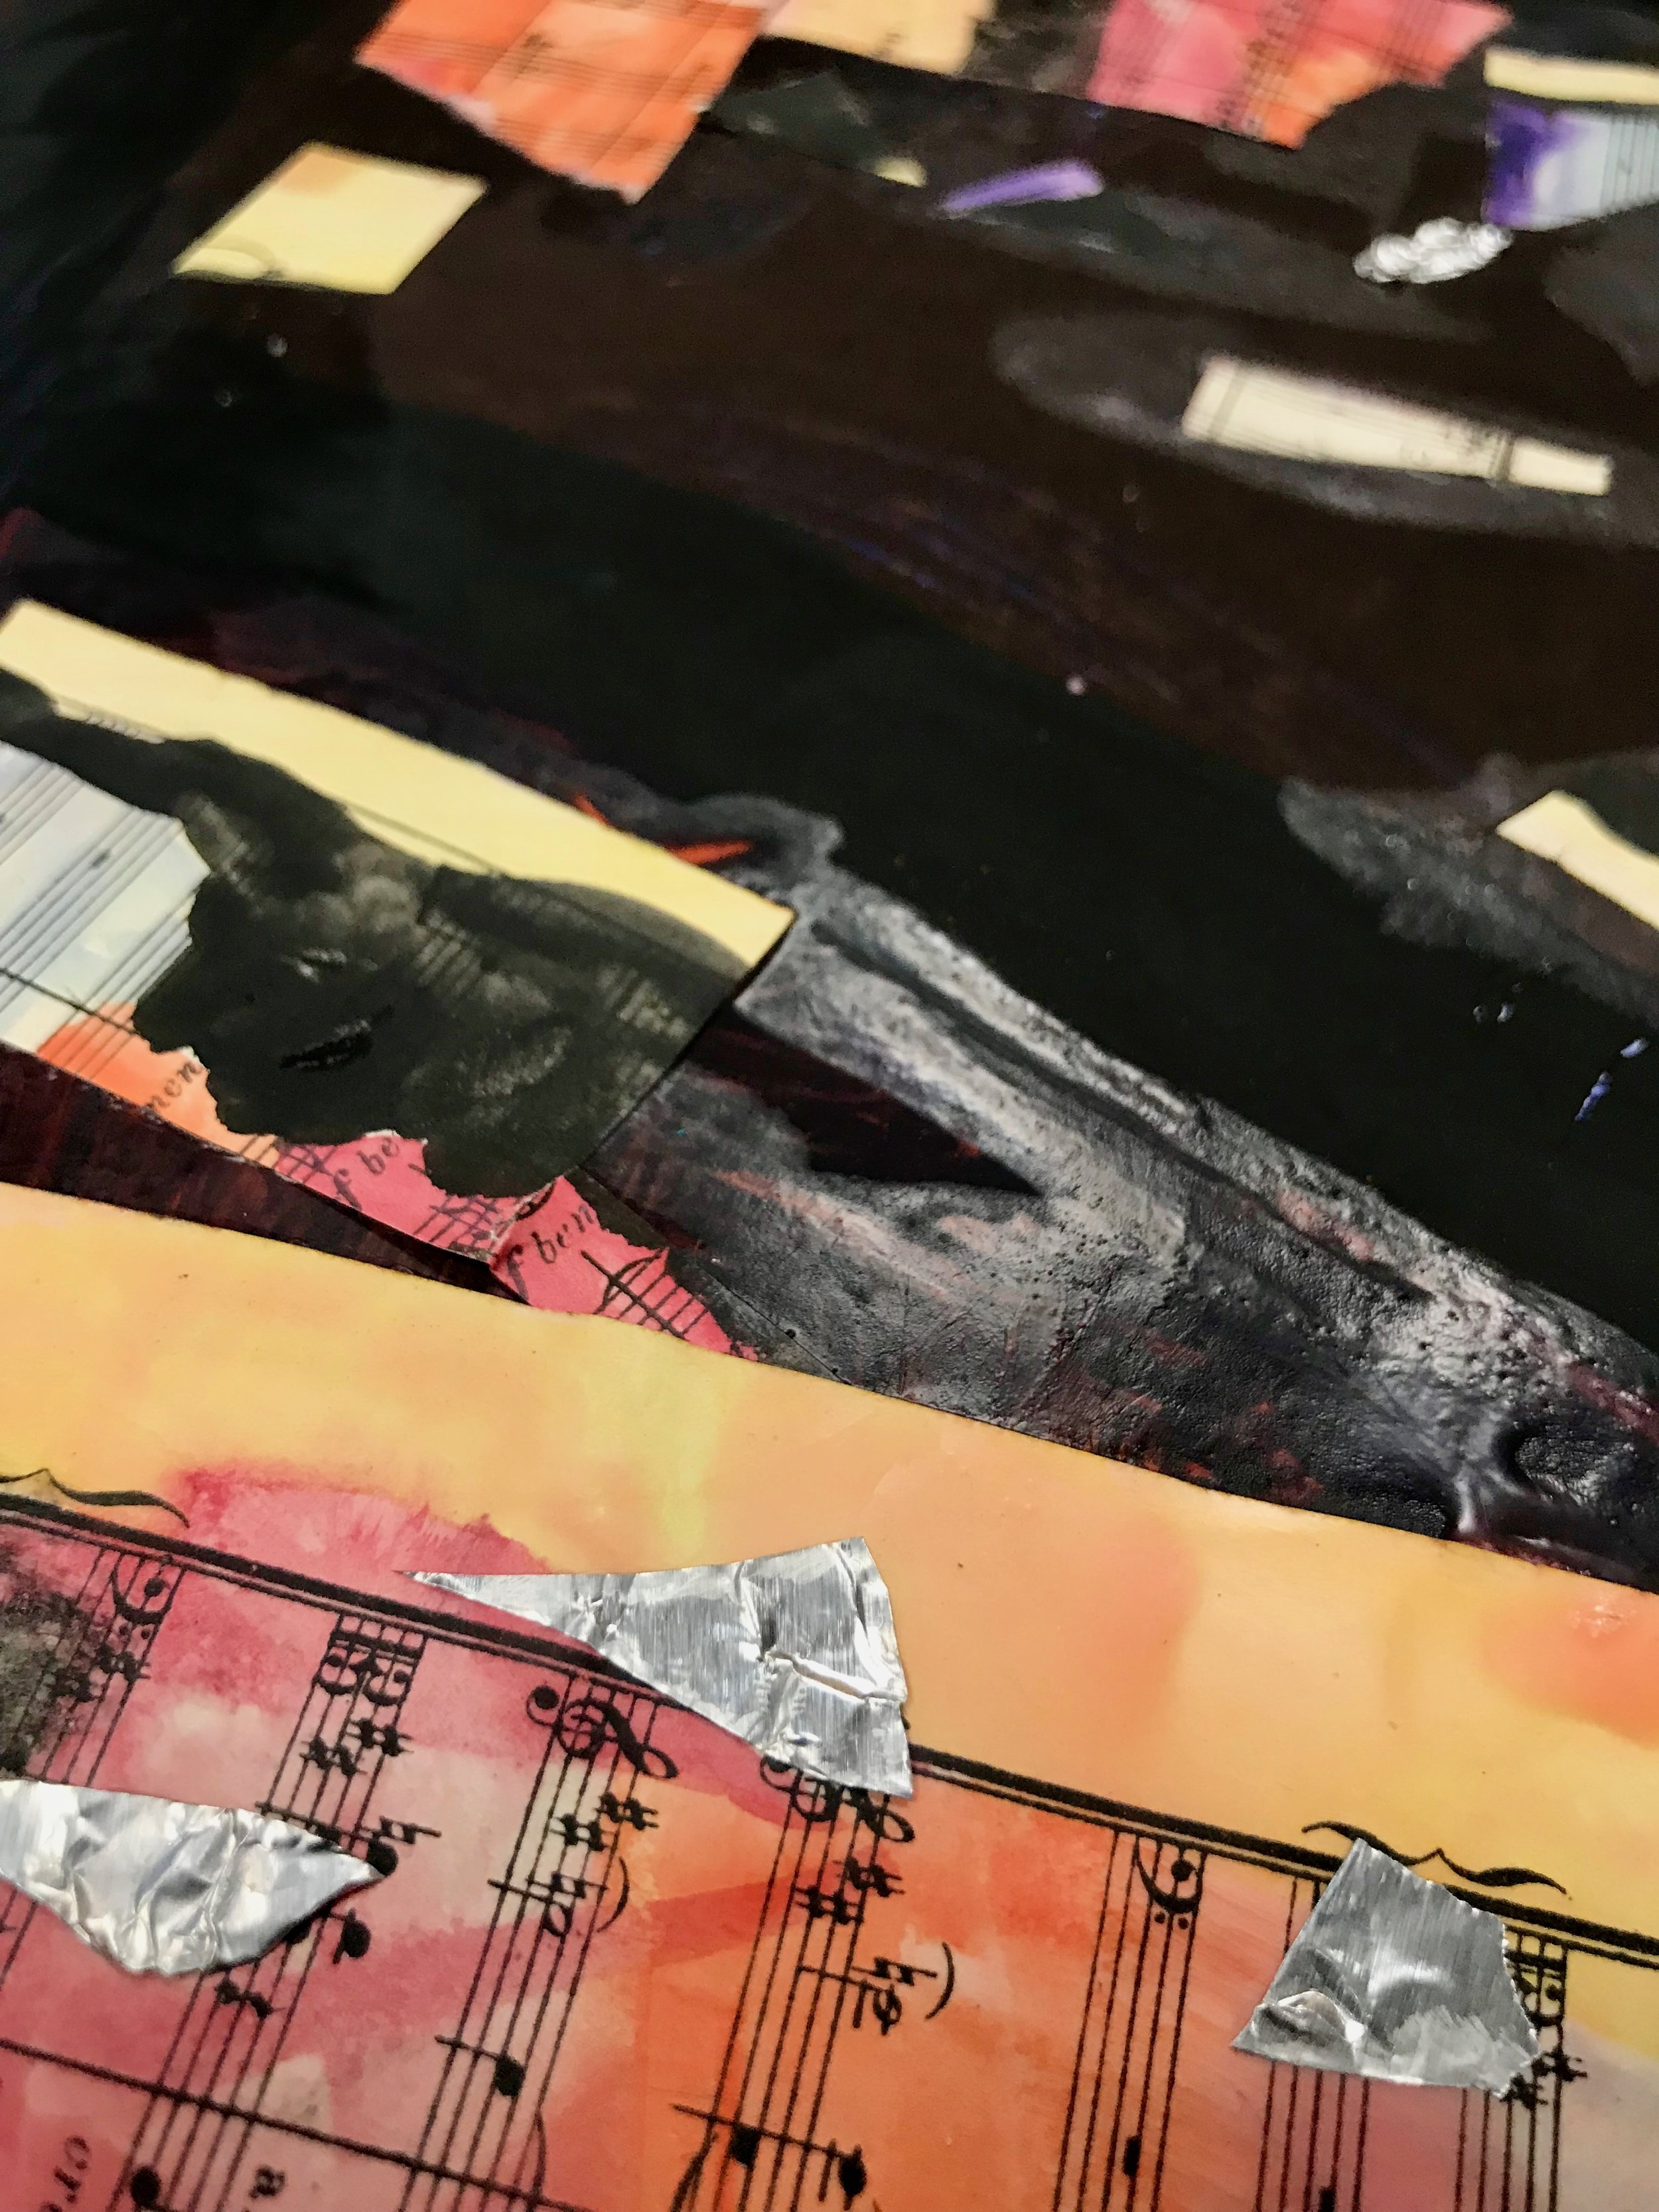 Detail from a child's work of art. The detail shows the watercolor music sheets cut into smaller rectangle/squares with tin foil embellishments along tempera lines and blocks of color.